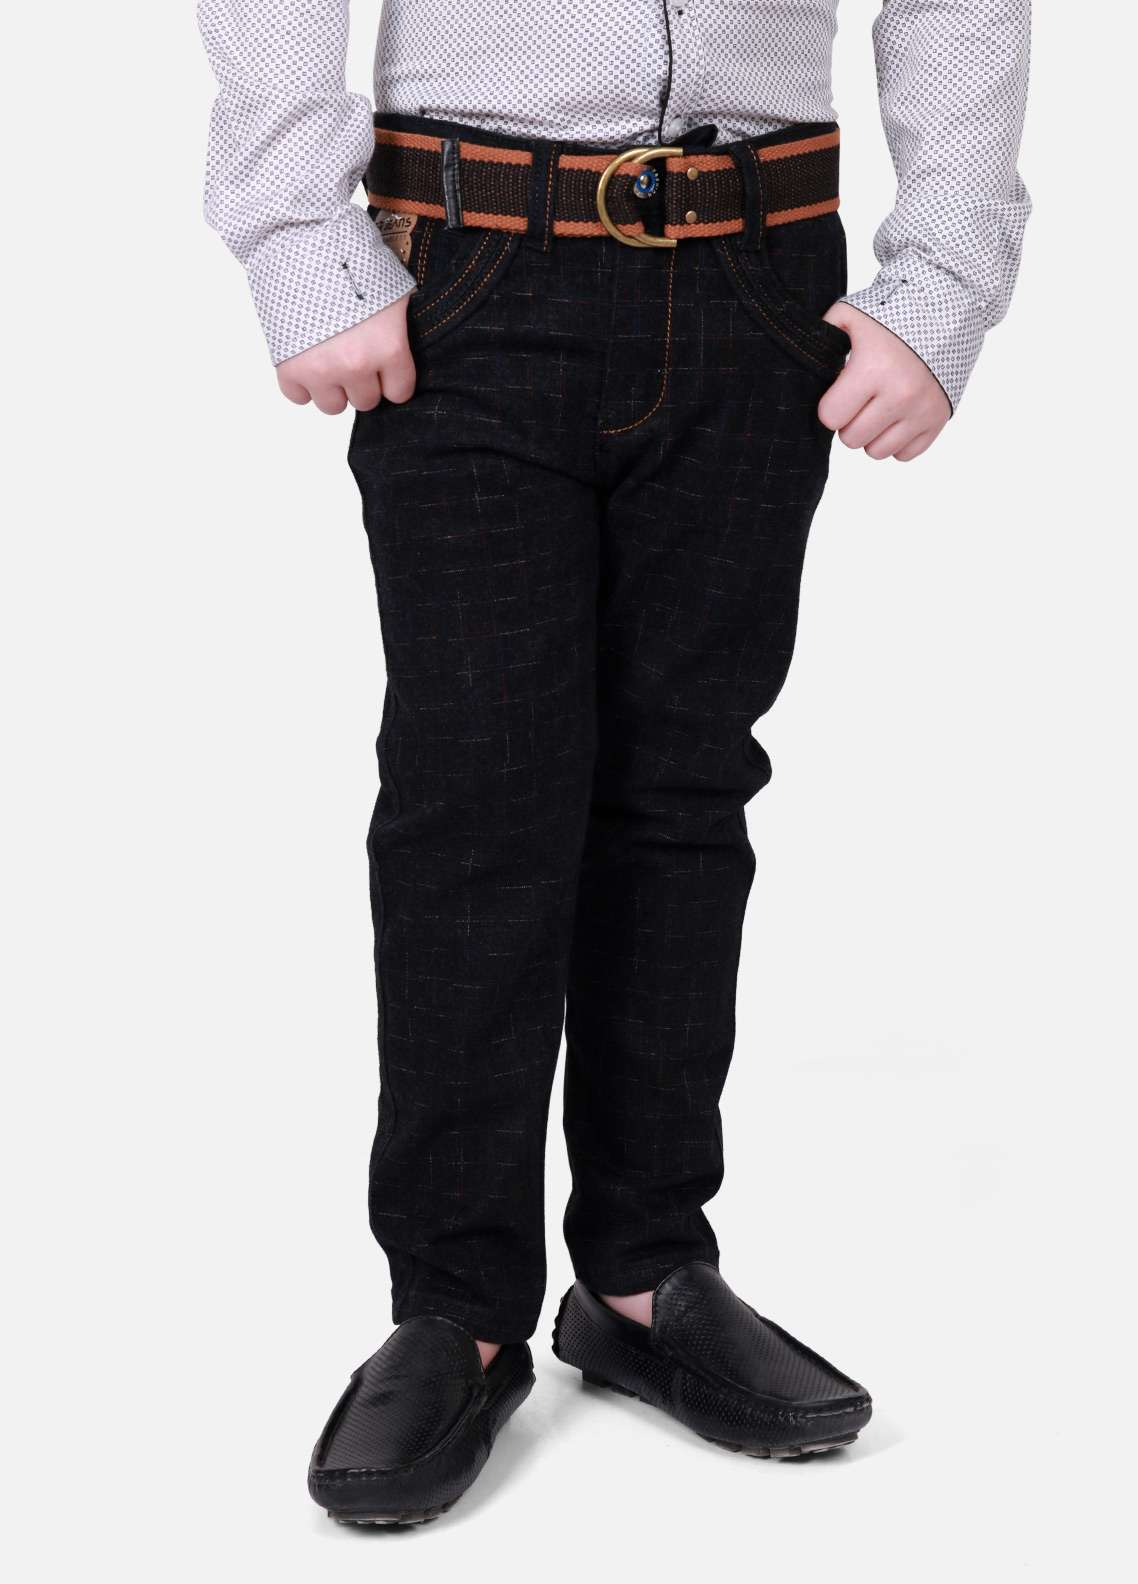 Edenrobe Jeans Plain Texture Pants for Boys - Brown EDK18P 5704